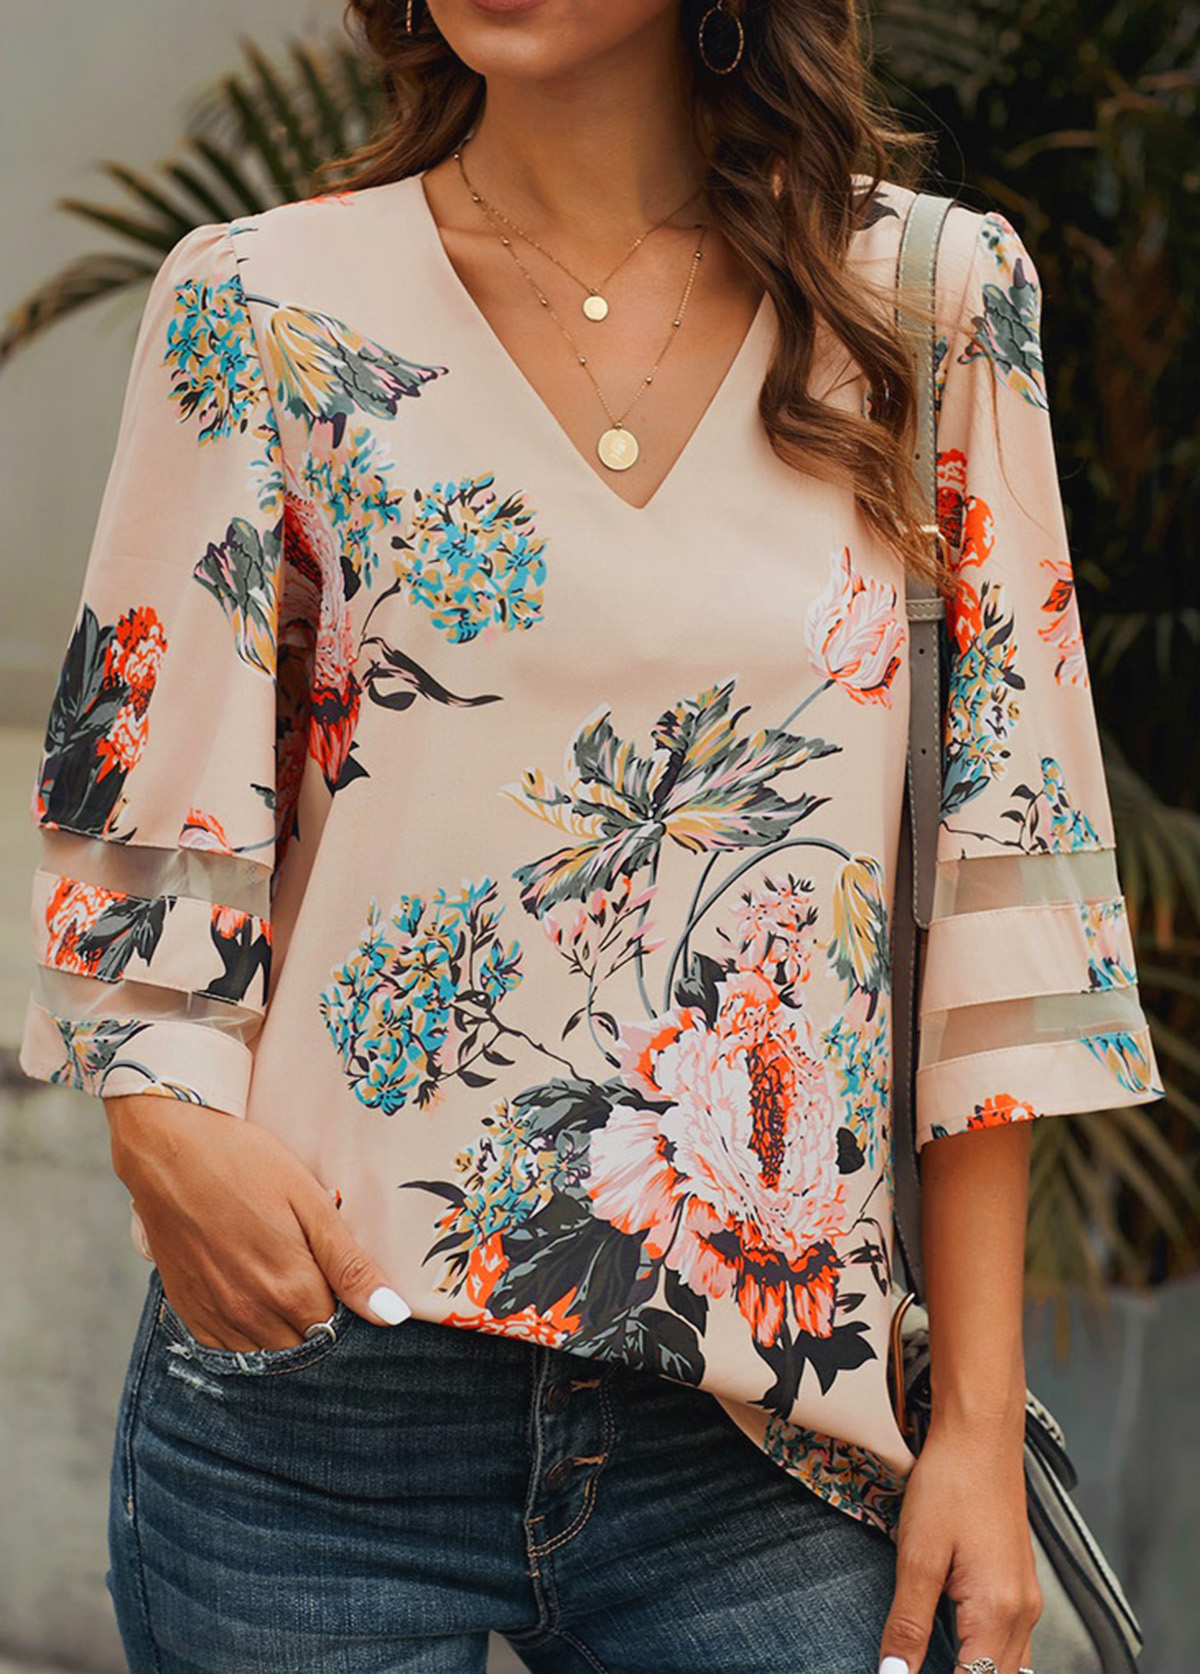 Mesh Panel Floral Print Light Pink Blouse